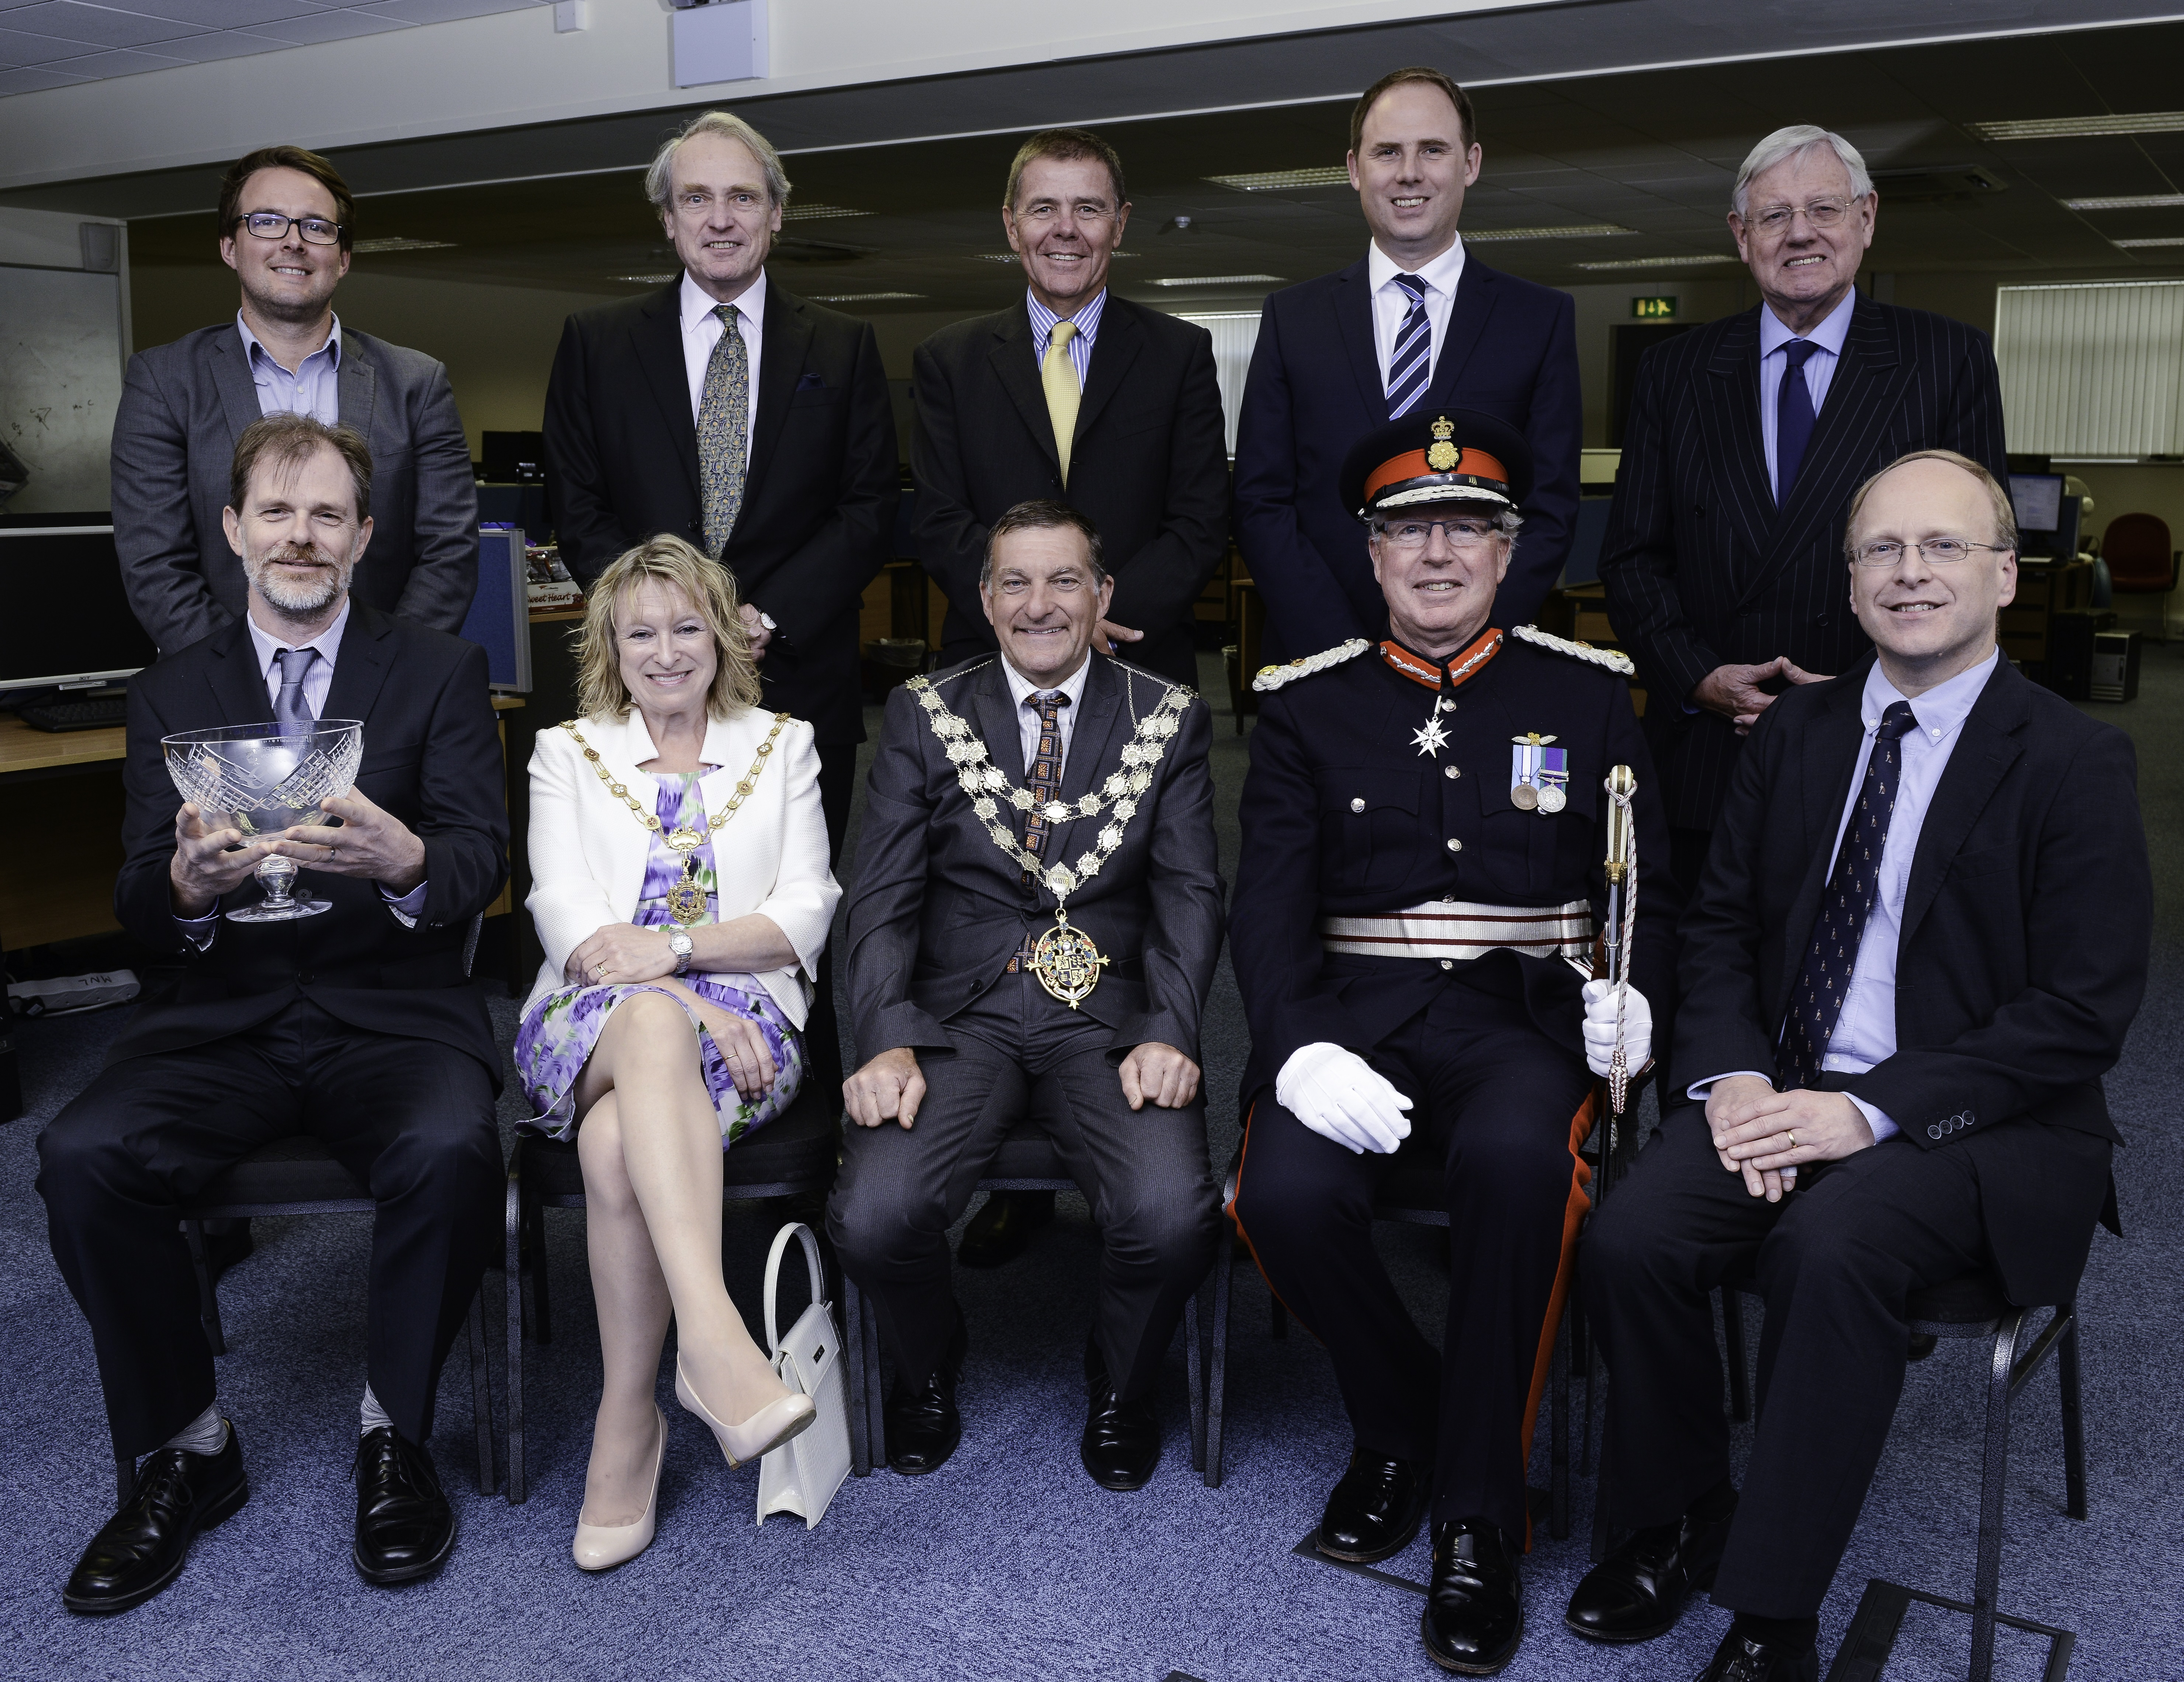 Queen's Award for Enterprise in the category of Innovation